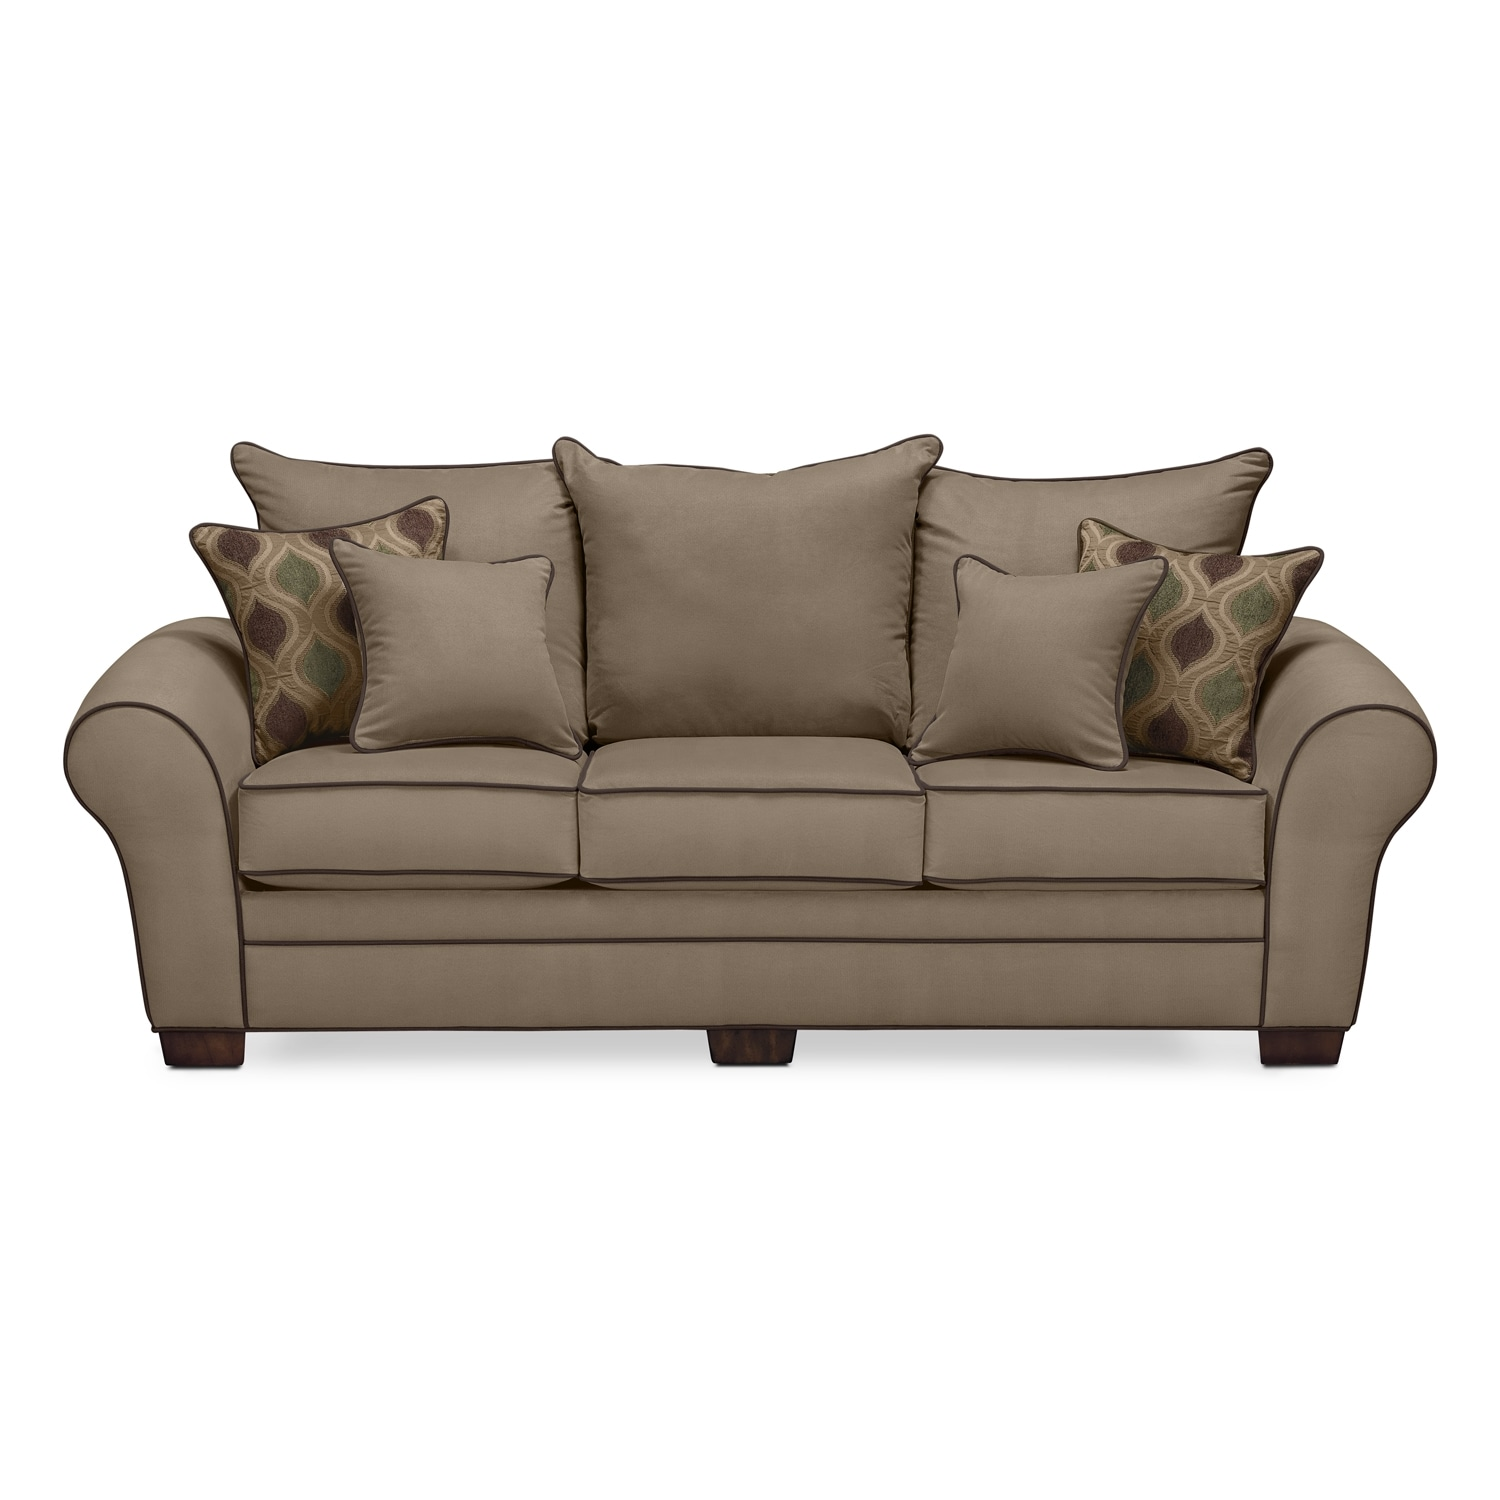 Rendezvous Sofa Tan